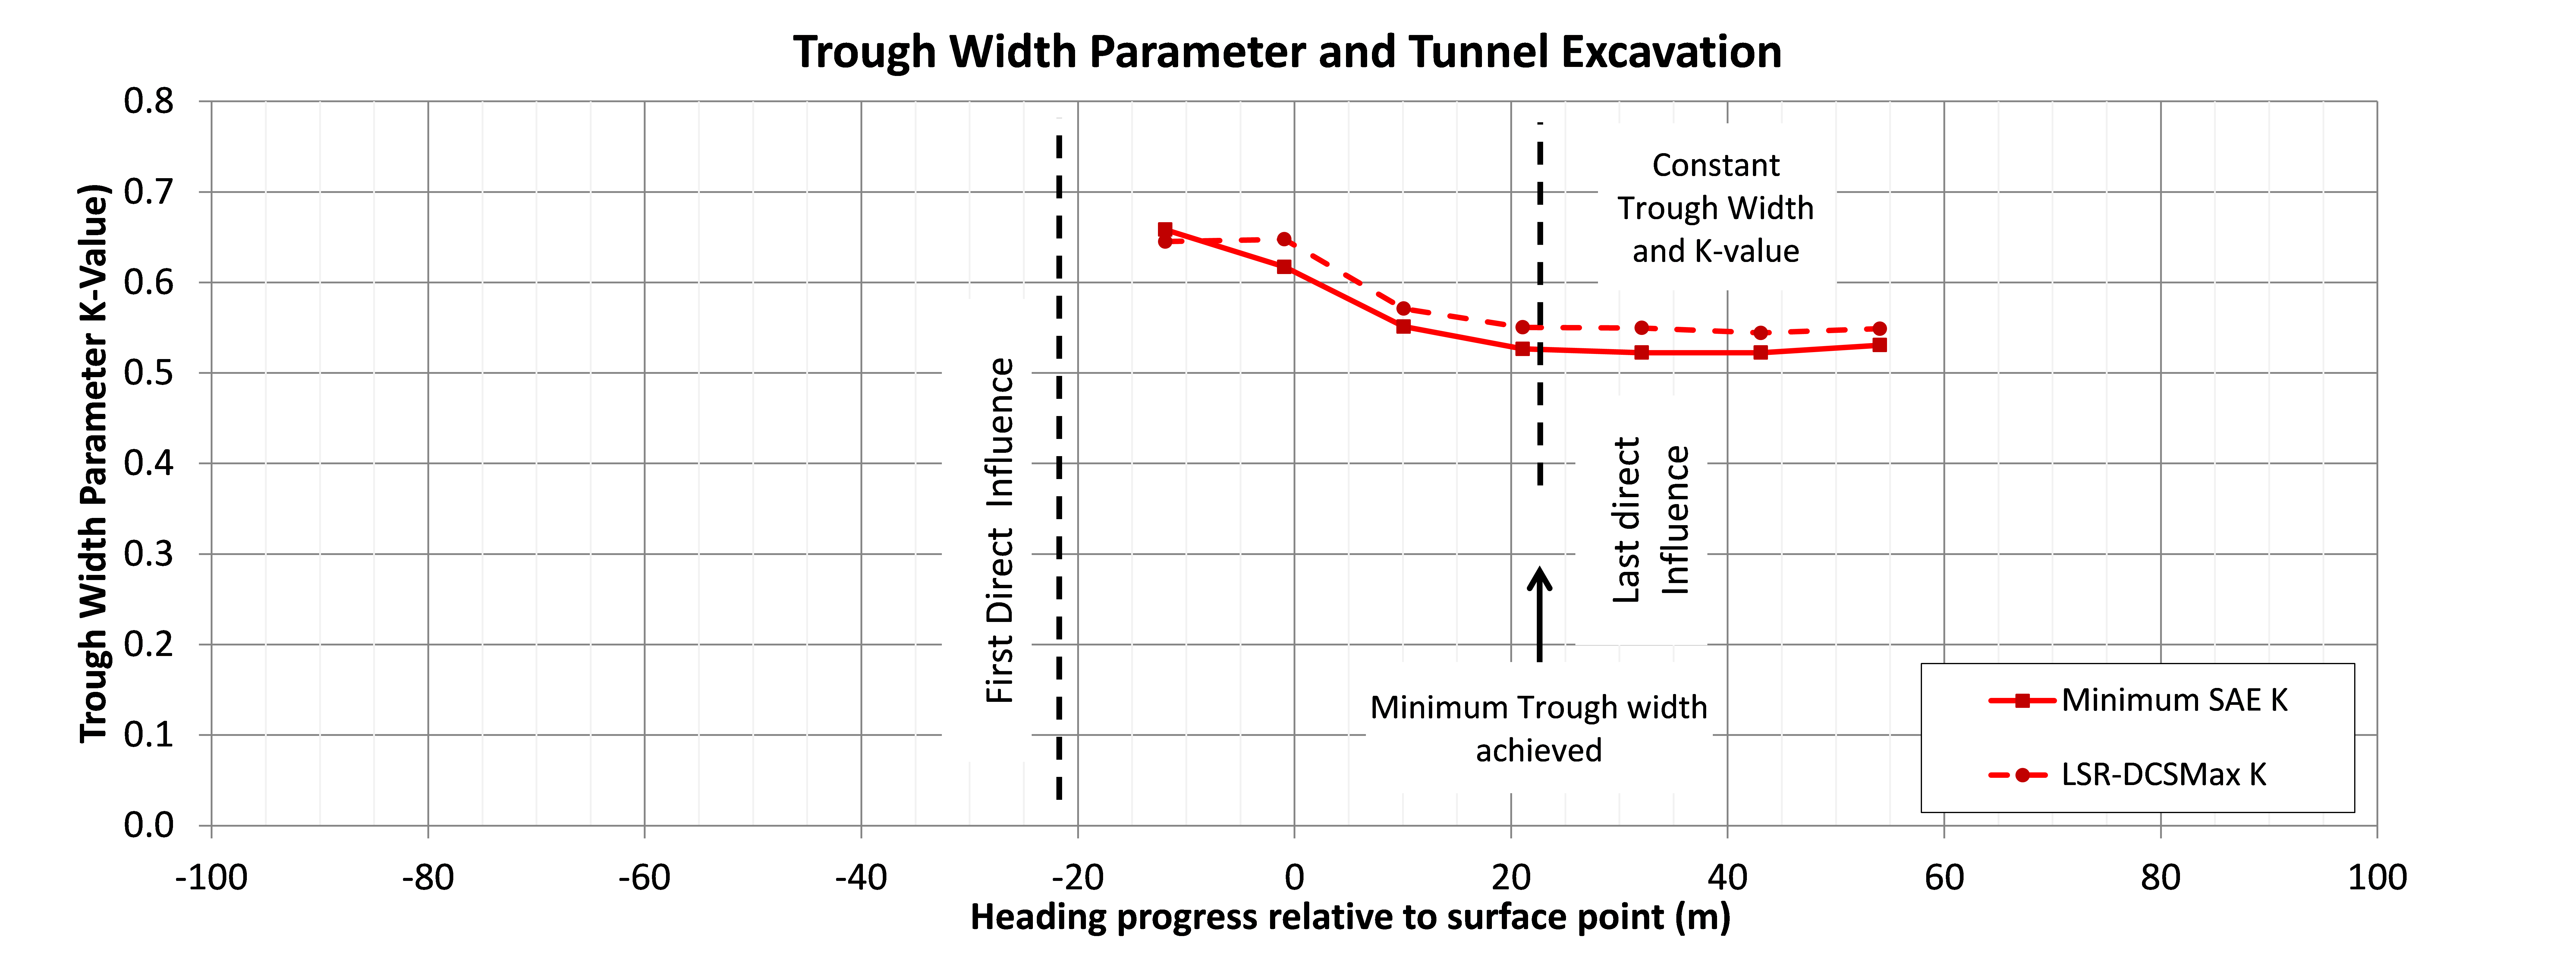 Figure 25 - Face dependent development of trough width for the PTW-W EL, enlargement heading. Settlement is baselined to zero at first influence from the Enlargement.